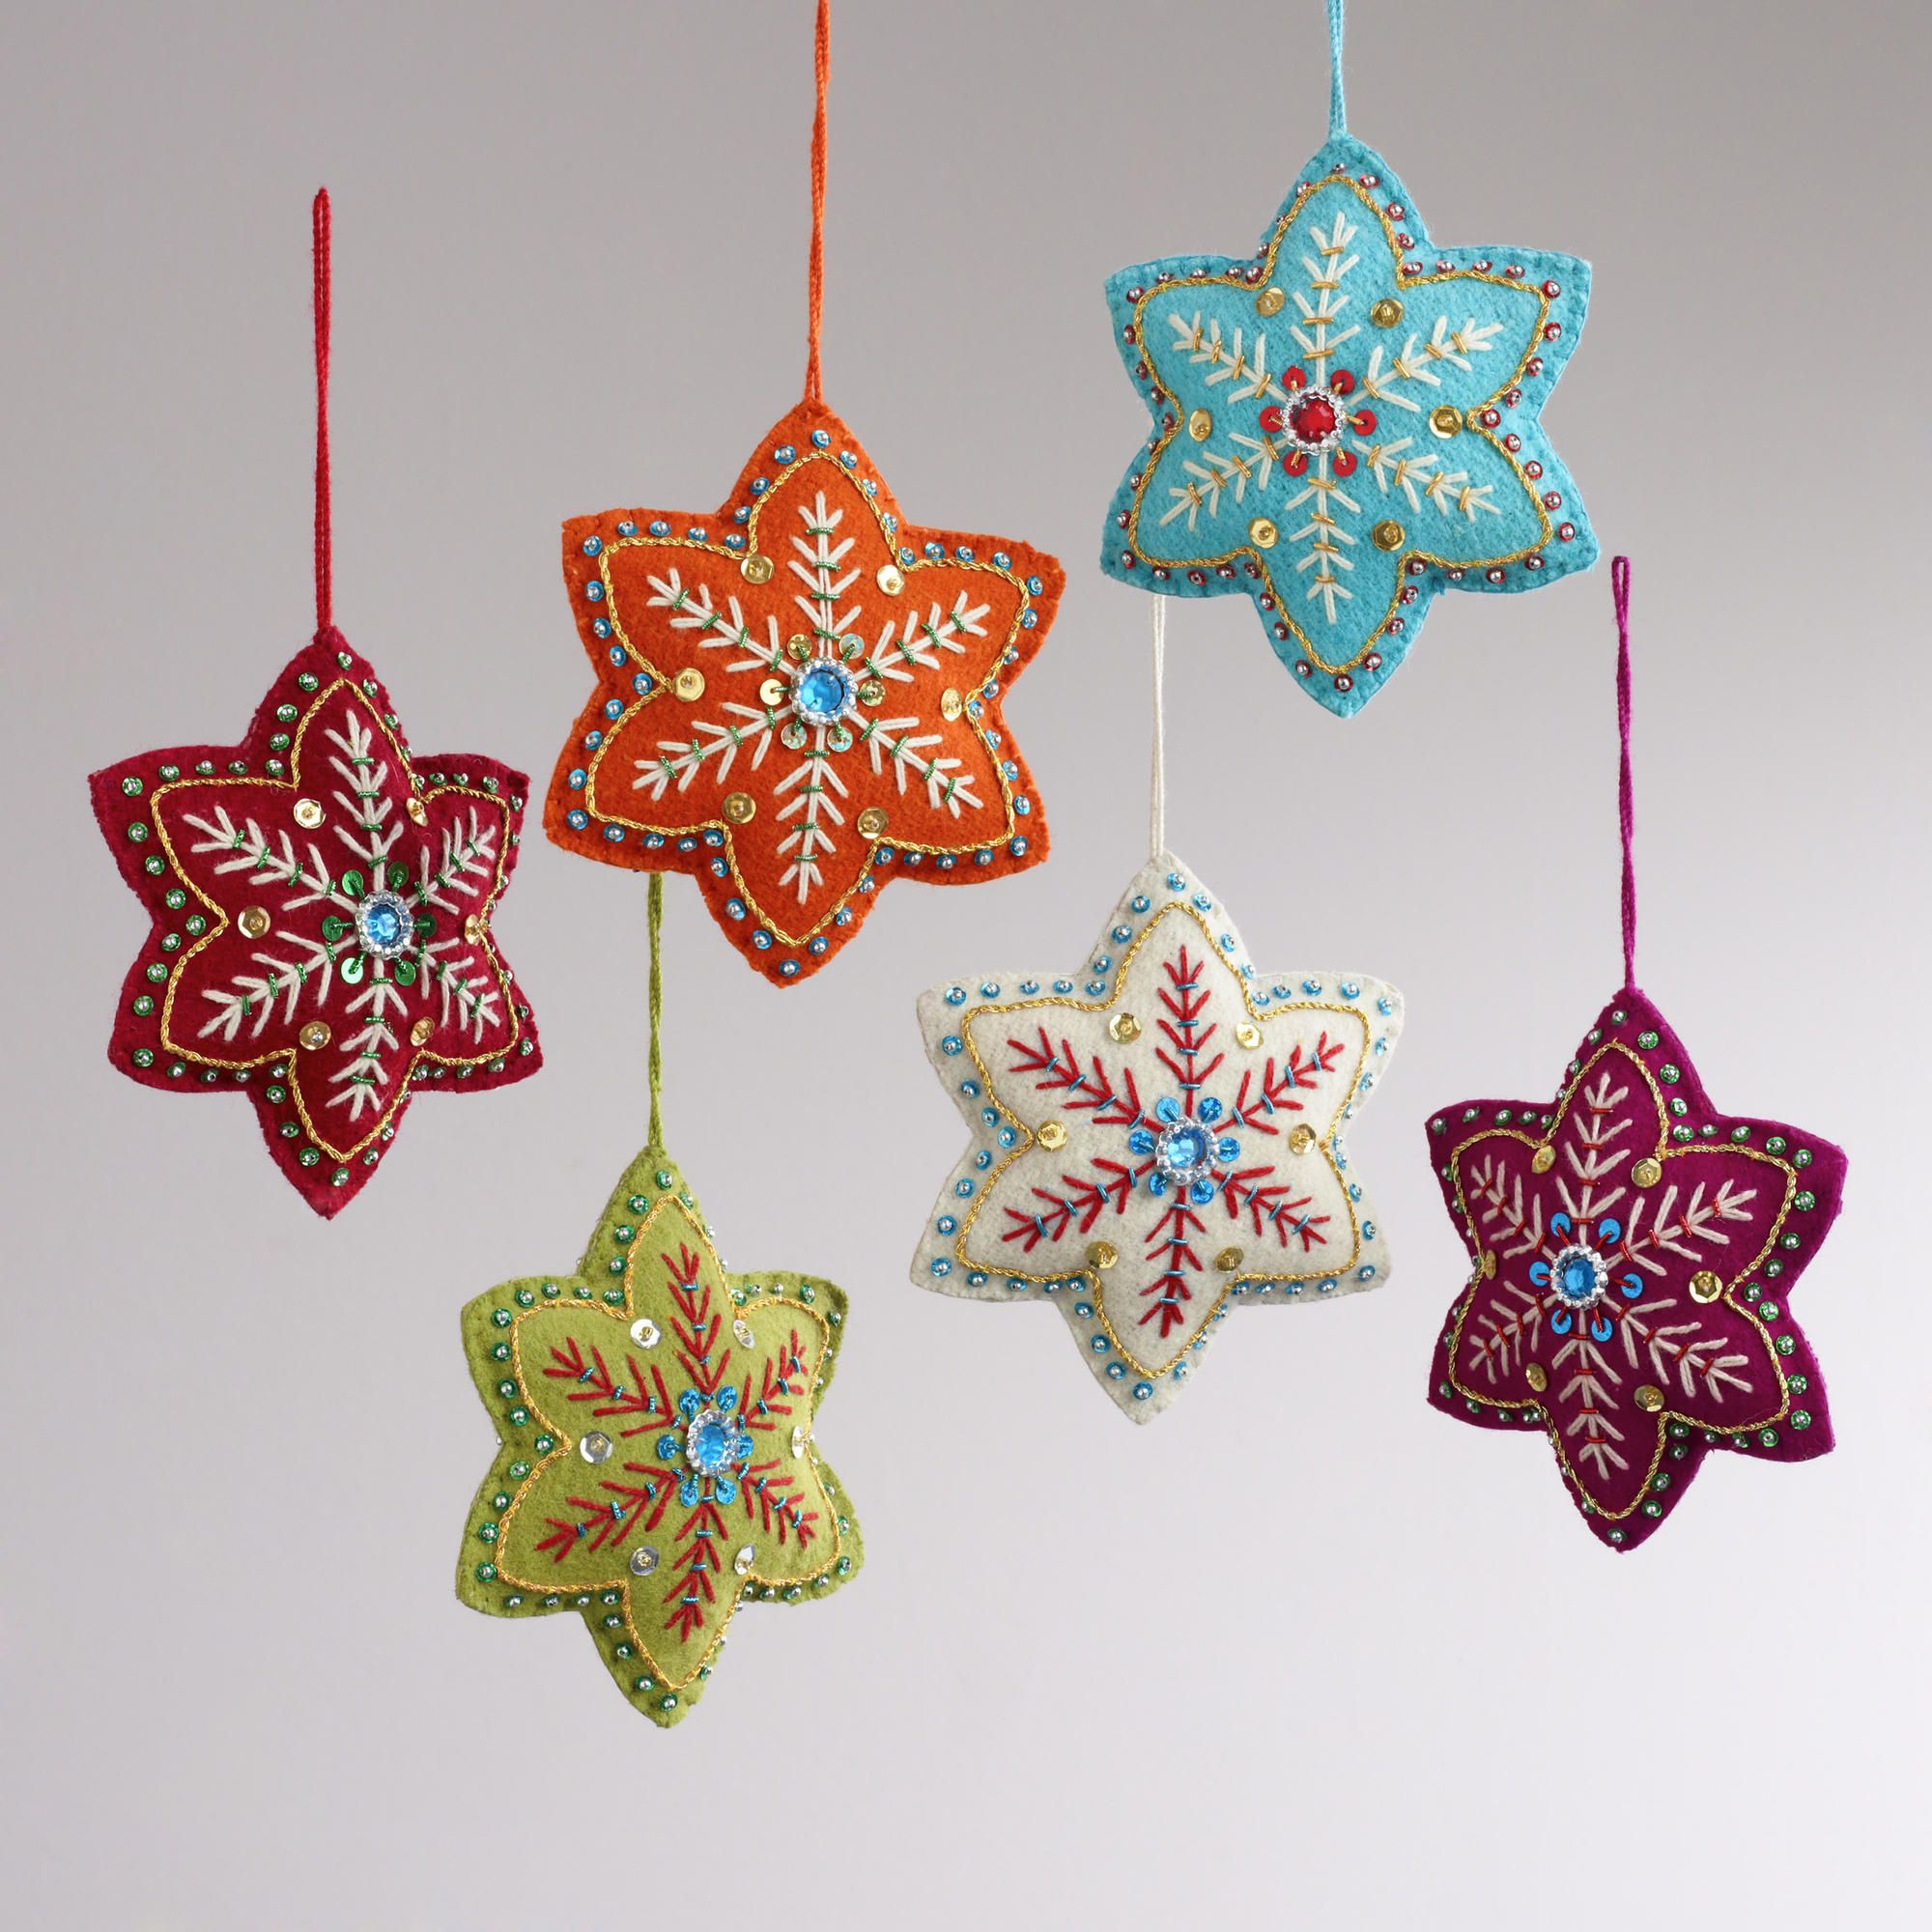 felt ornaments embroidered felt 6 pointed star ornaments set of 6 world market - Embroidered Christmas Ornaments